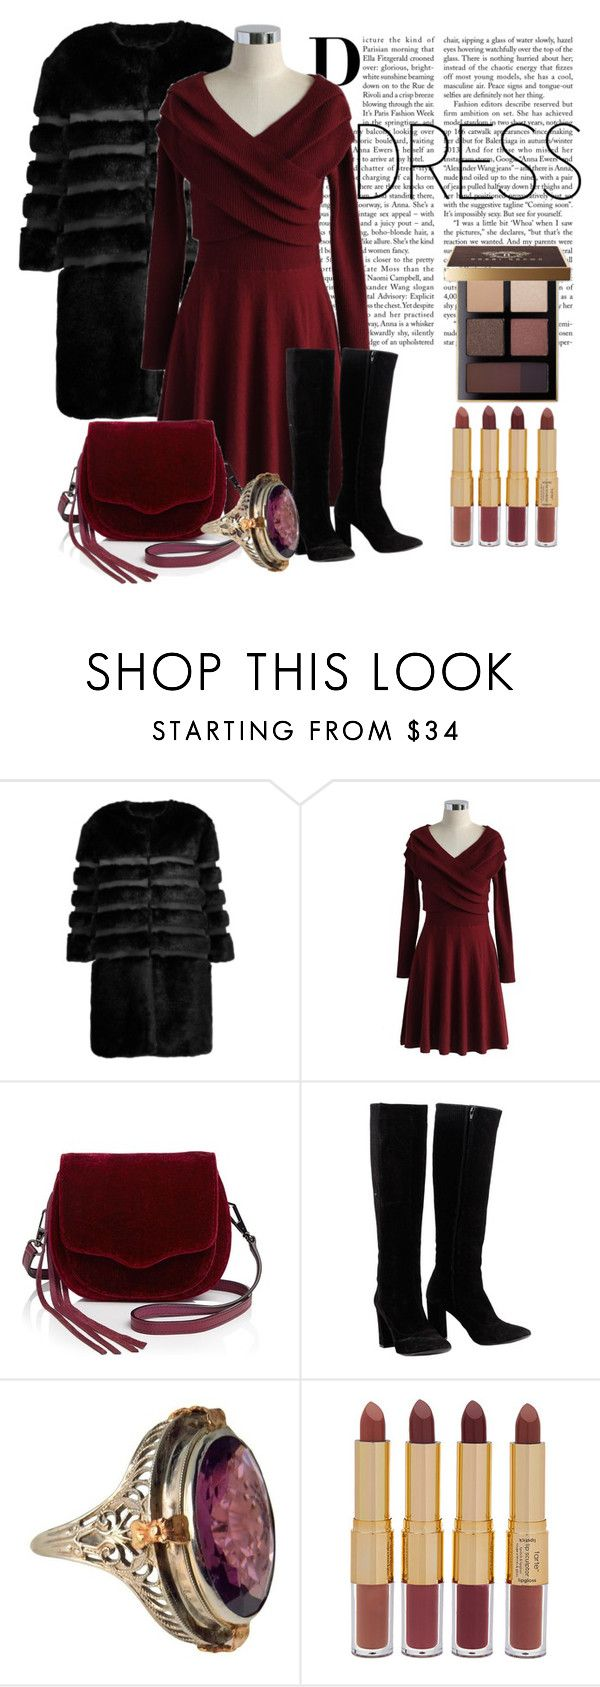 """""""Winter Dress"""" by janie-xox ❤ liked on Polyvore featuring AINEA, Chicwish, Rebecca Minkoff, Chloé, tarte, Bobbi Brown Cosmetics and under100"""